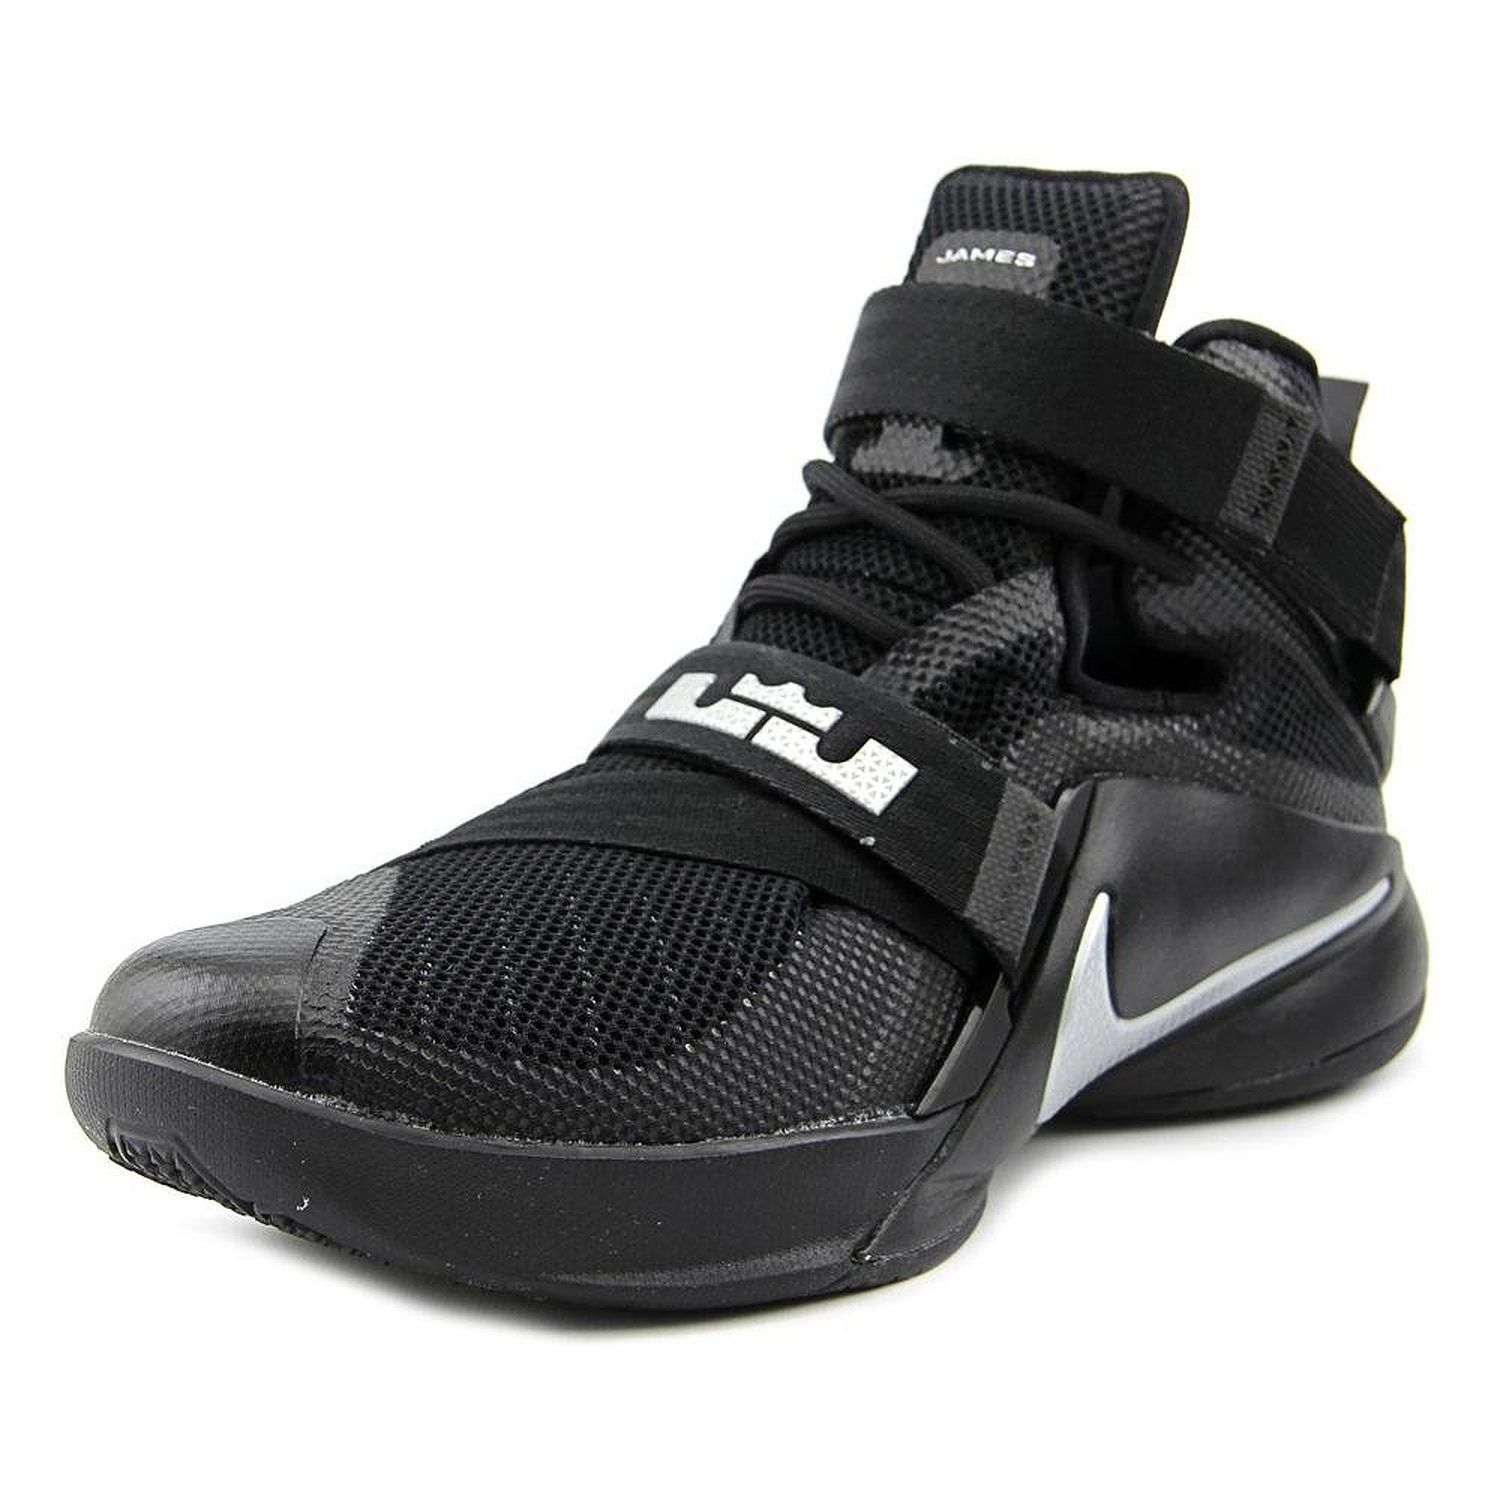 34a23337a72 Best Ankle Support Basketball Shoes